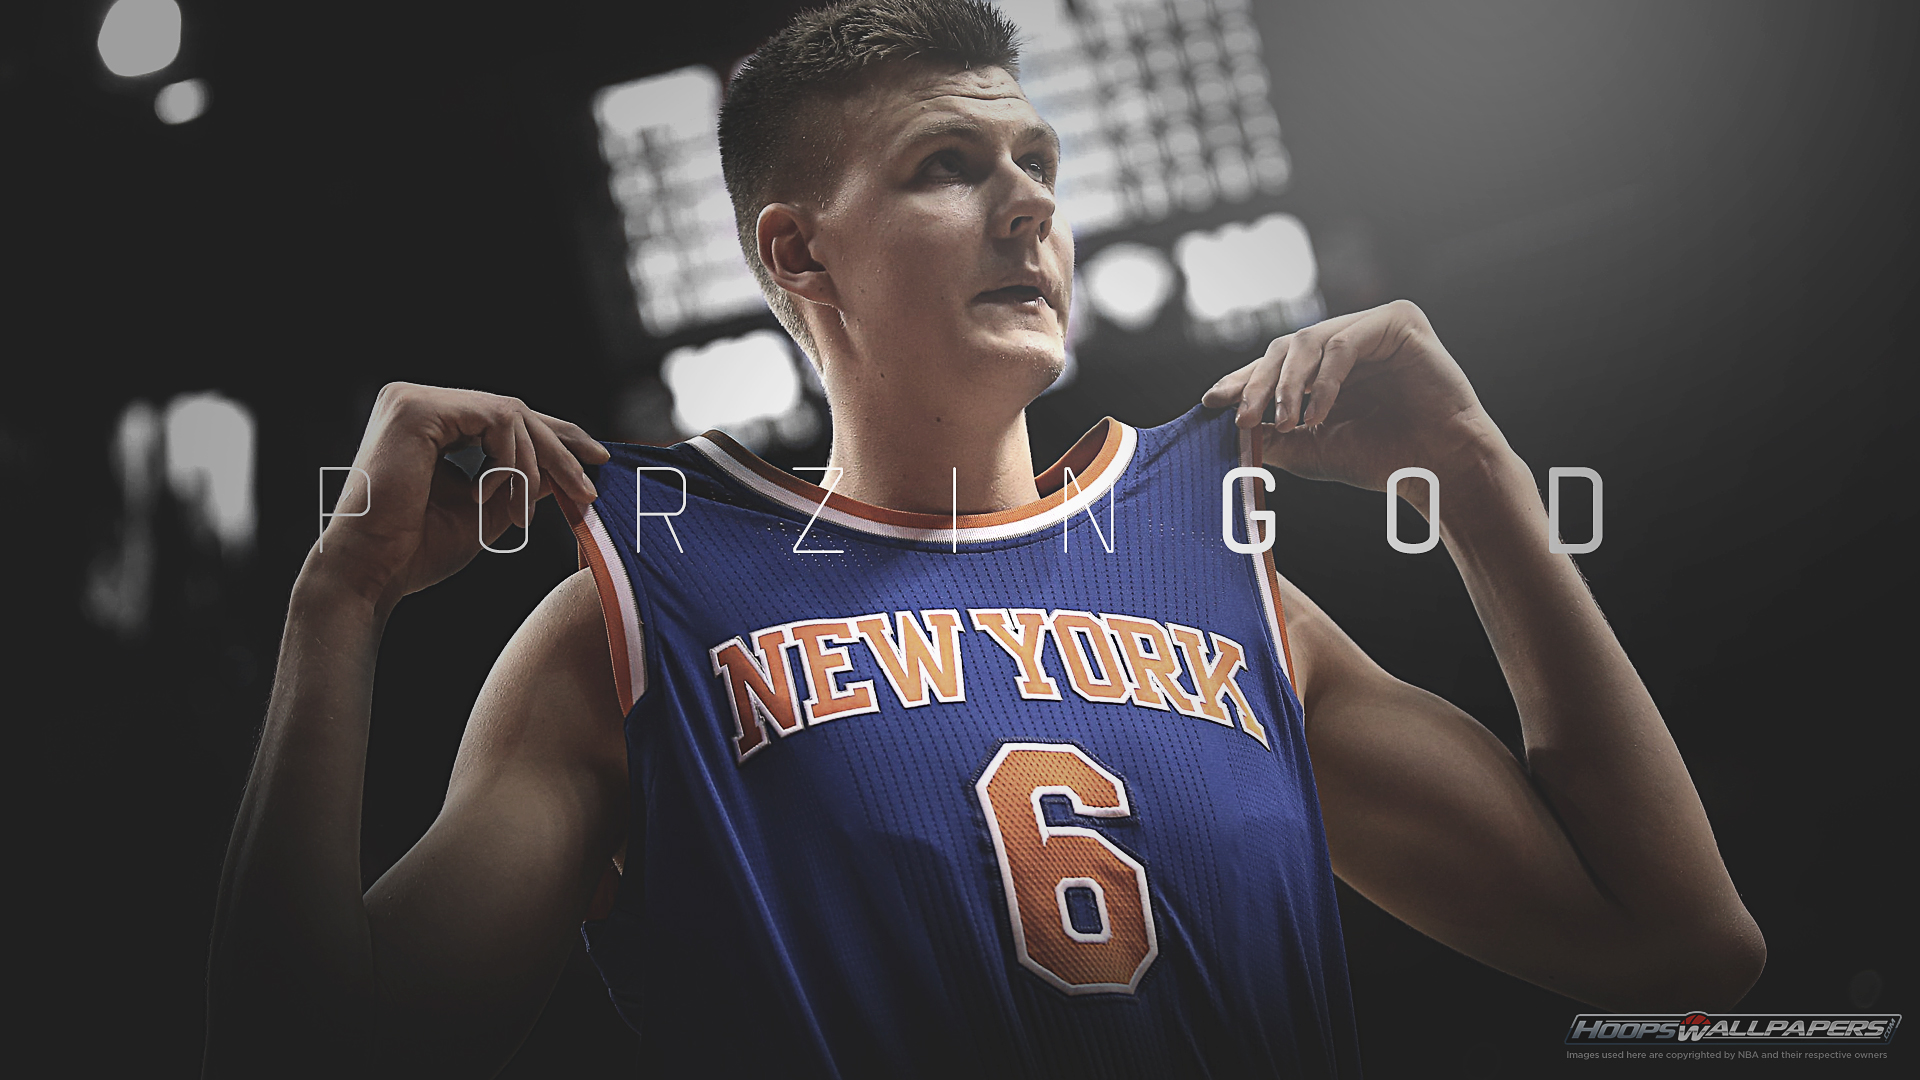 Hd wallpaper nba - Kristaps Porzingis Wallpaper